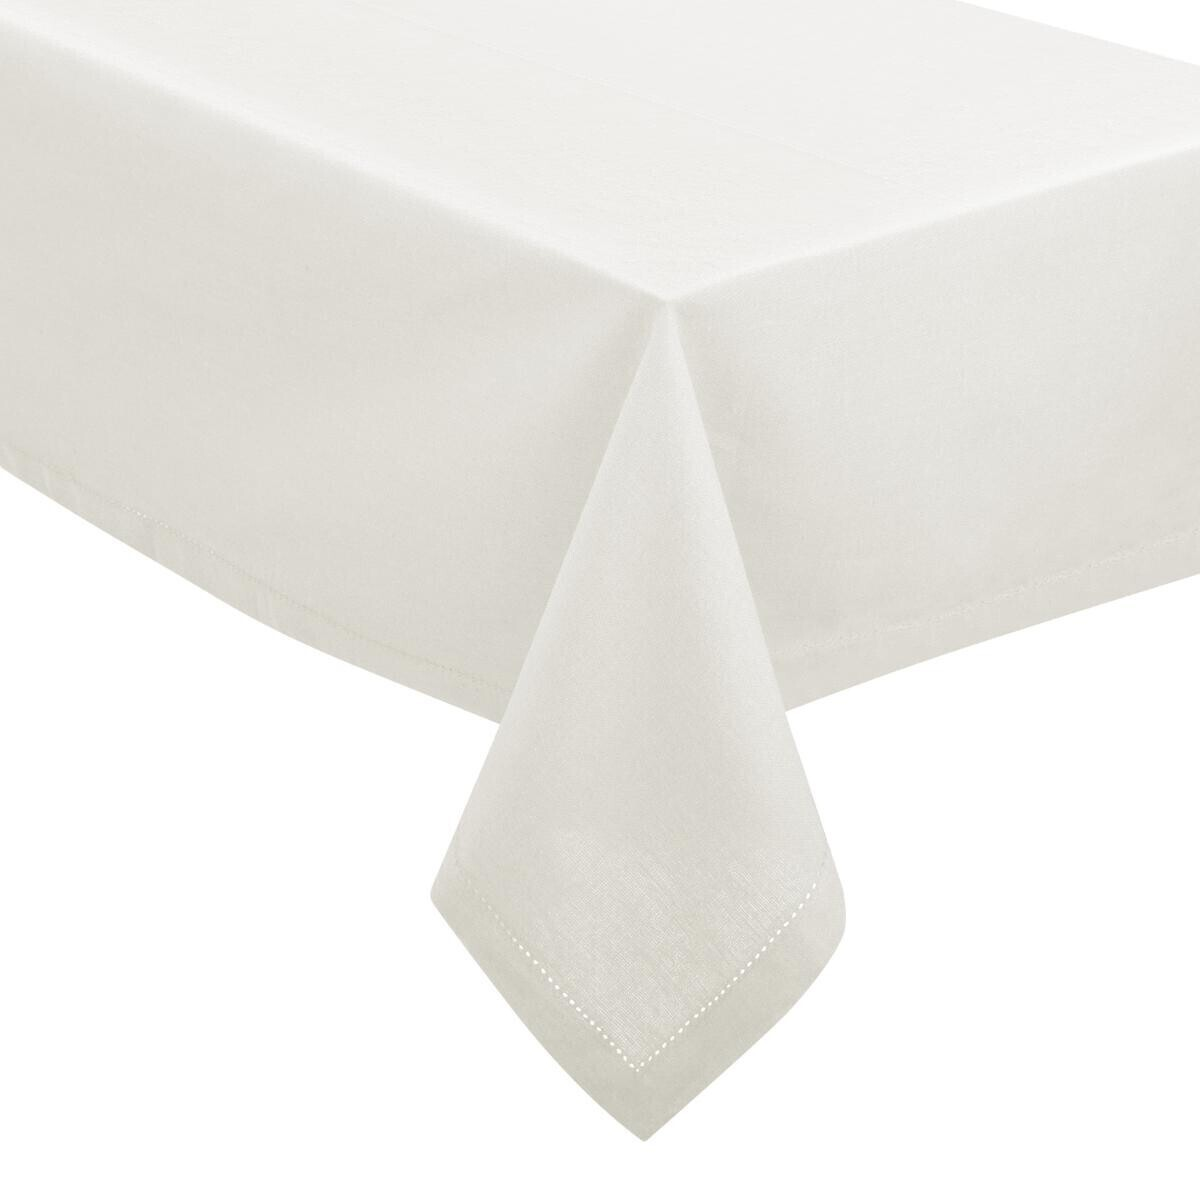 Nappe Blanche Tissu Nappe Blanche Chambray 140x240 En Cours